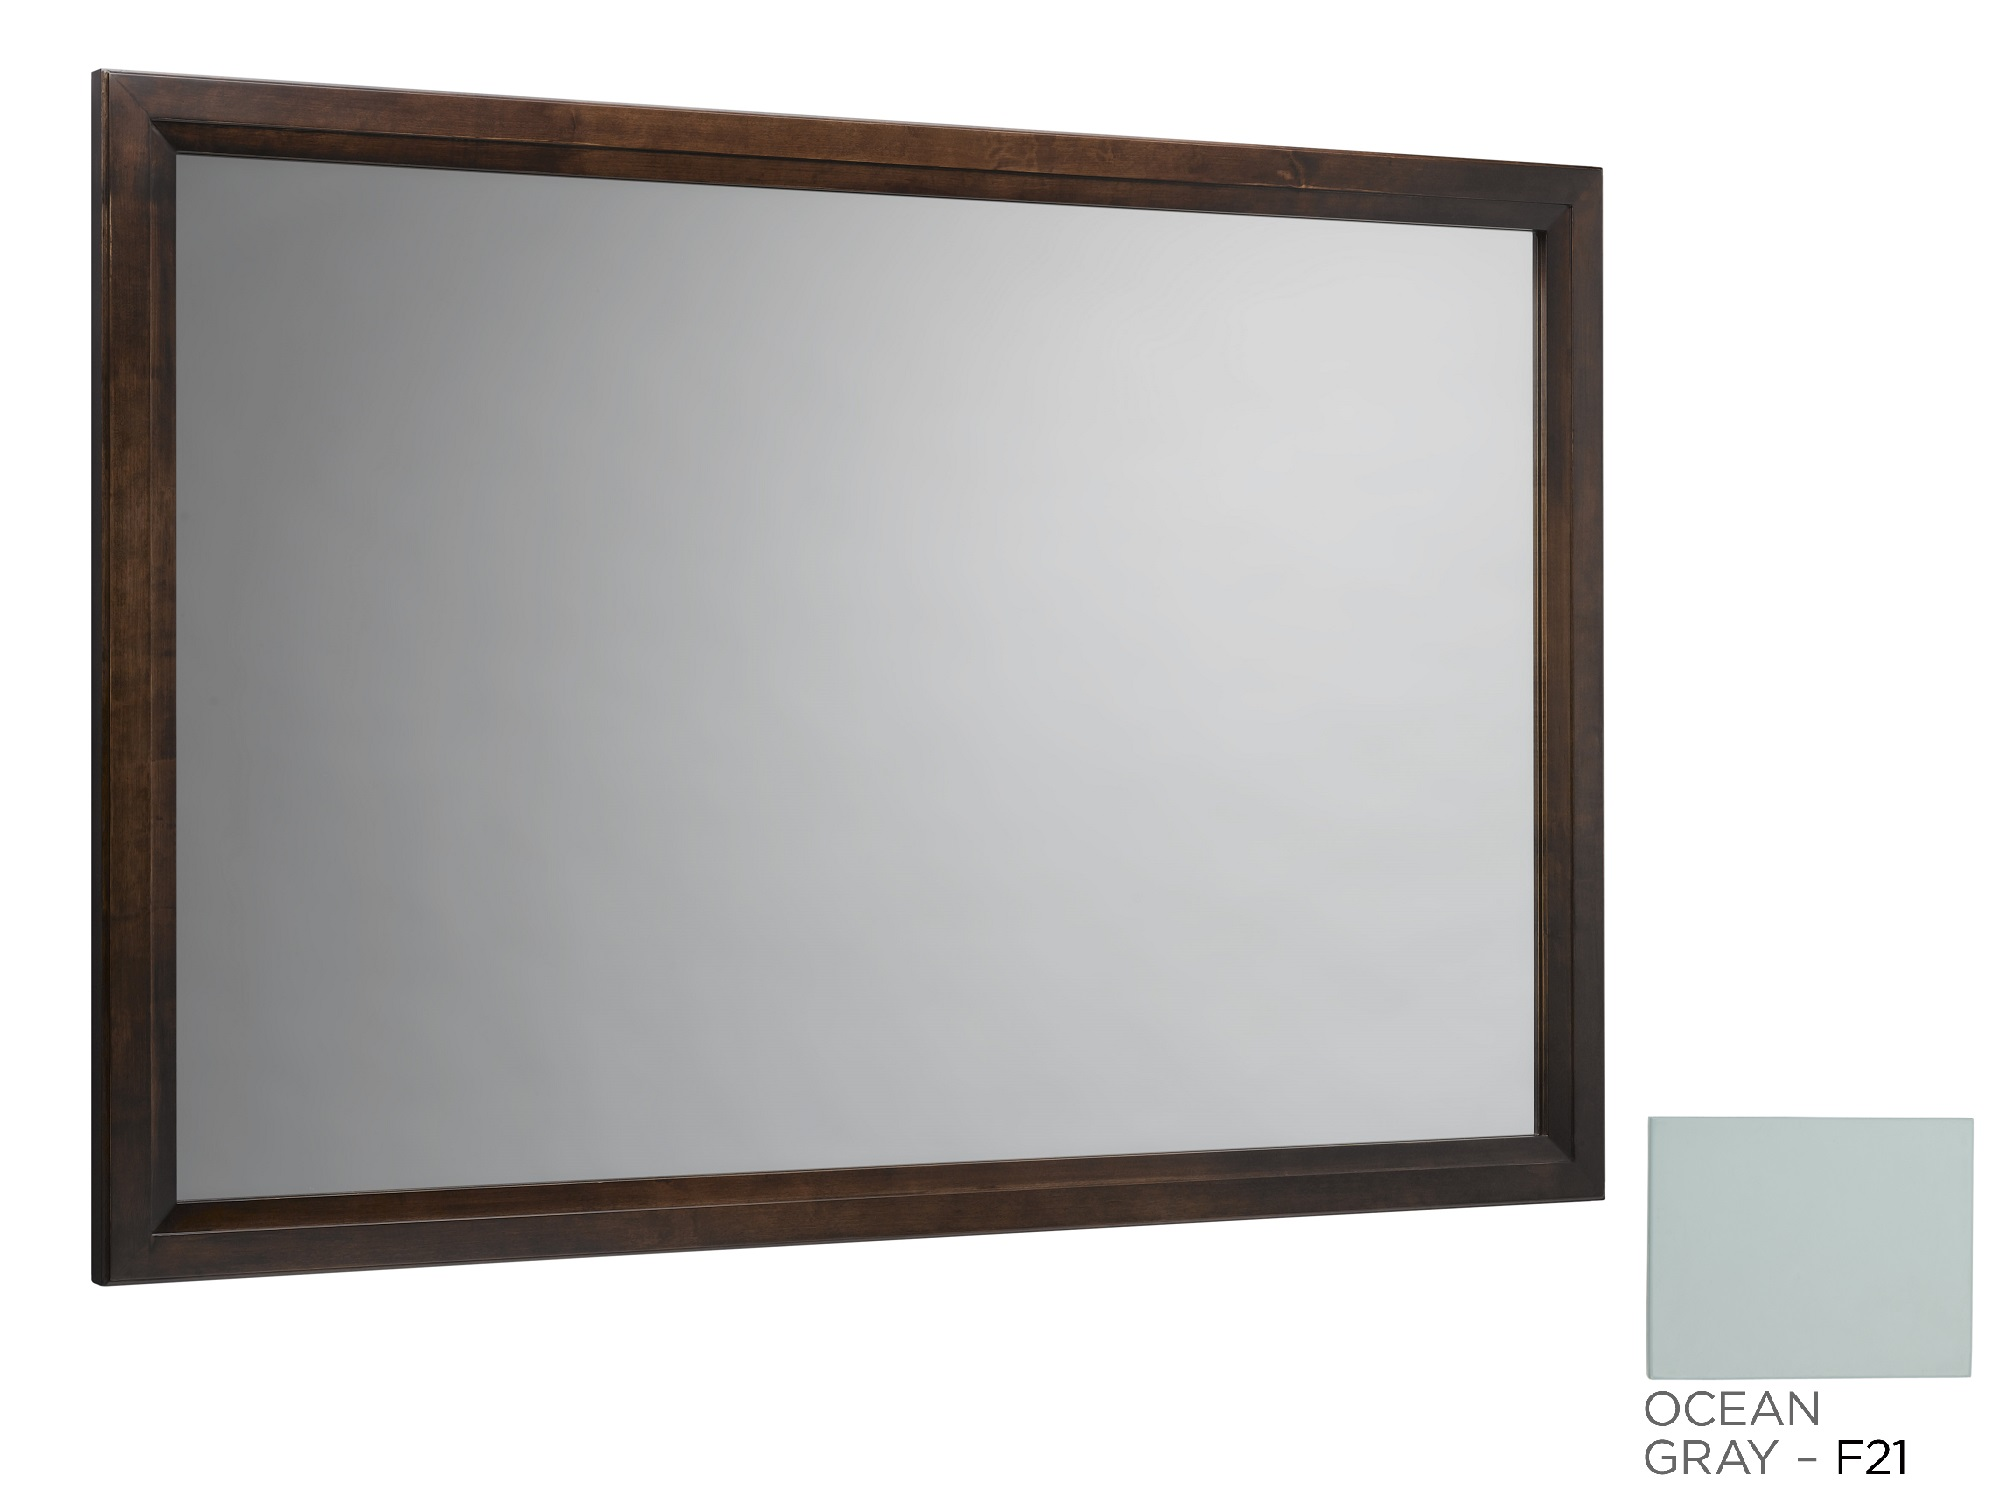 "Ronbow Transitional 60"" x 39"" Solid Wood Framed Bathroom Mirror in Caf? Walnut"